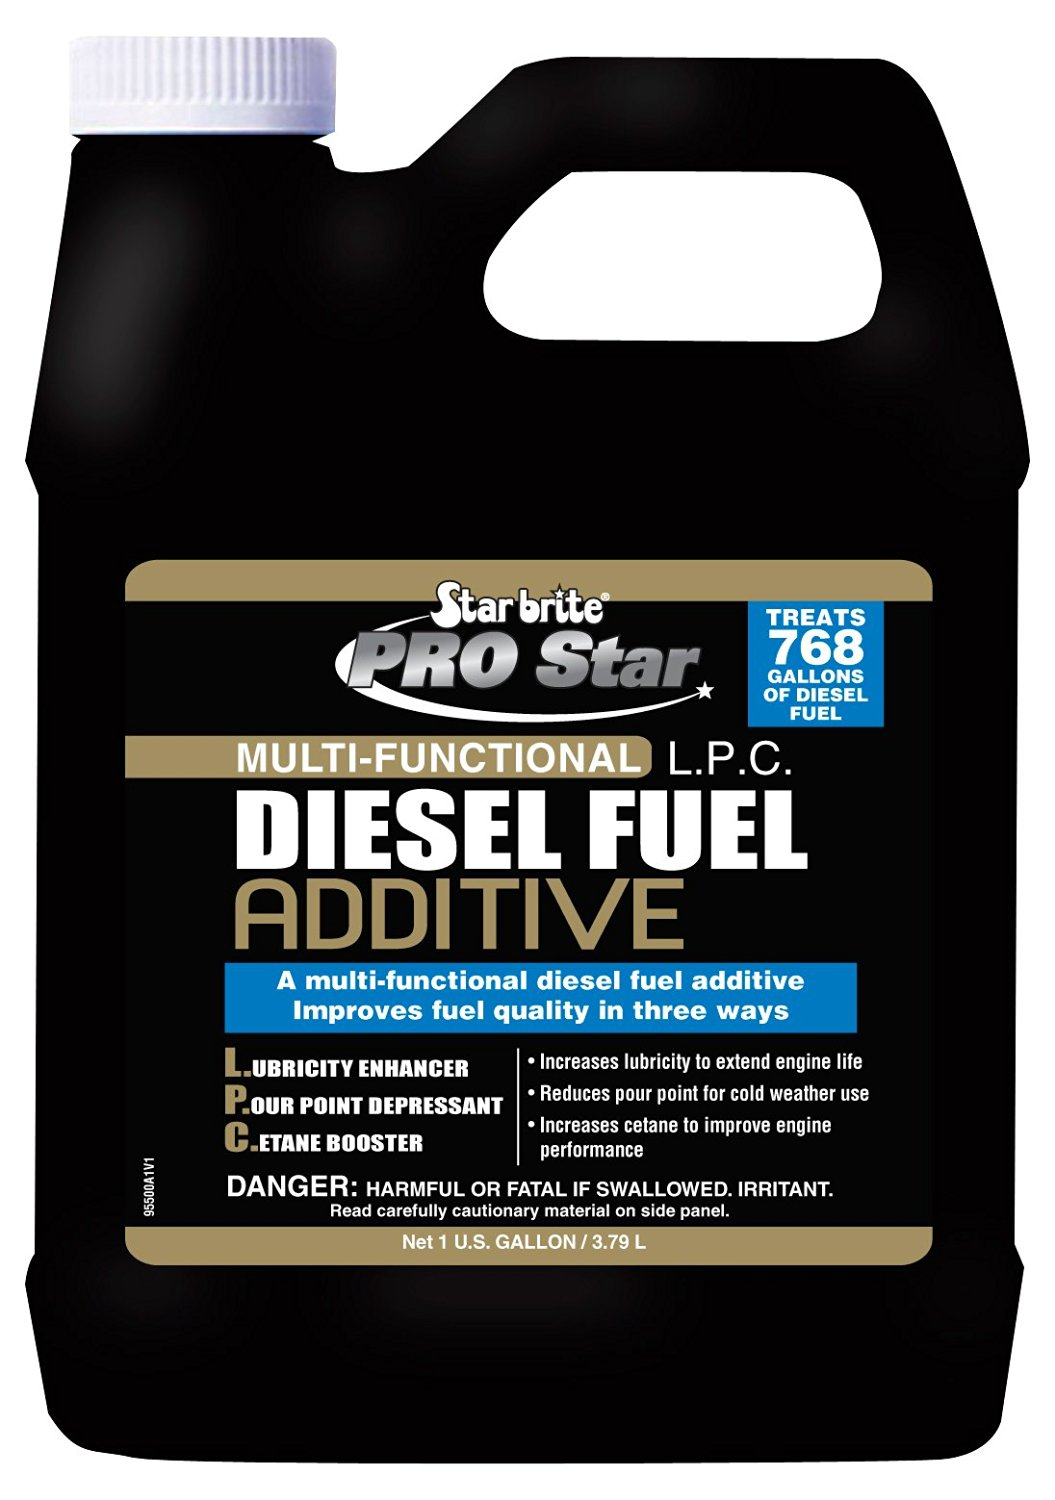 Star brite Pro Star LPC Diesel Additive - 1 gal